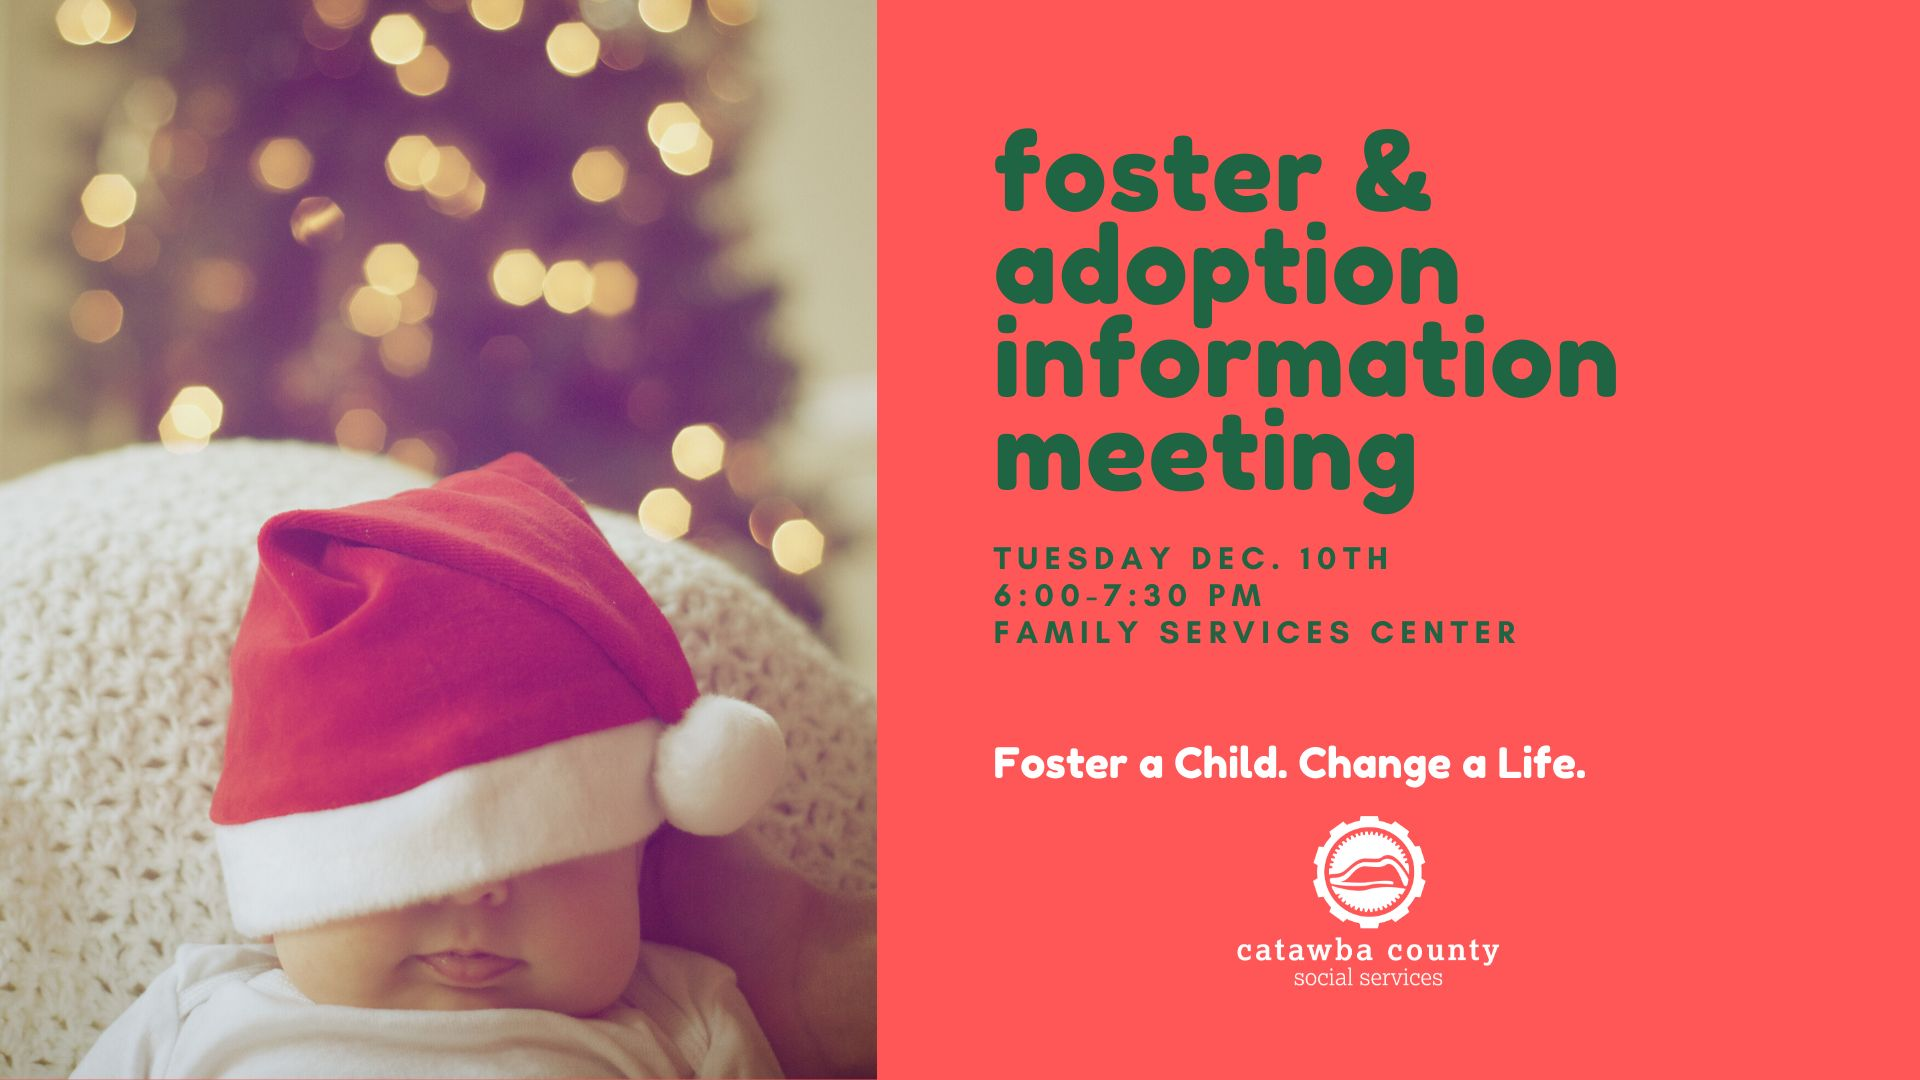 Foster/Adoption Information Meeting 12-10-2019